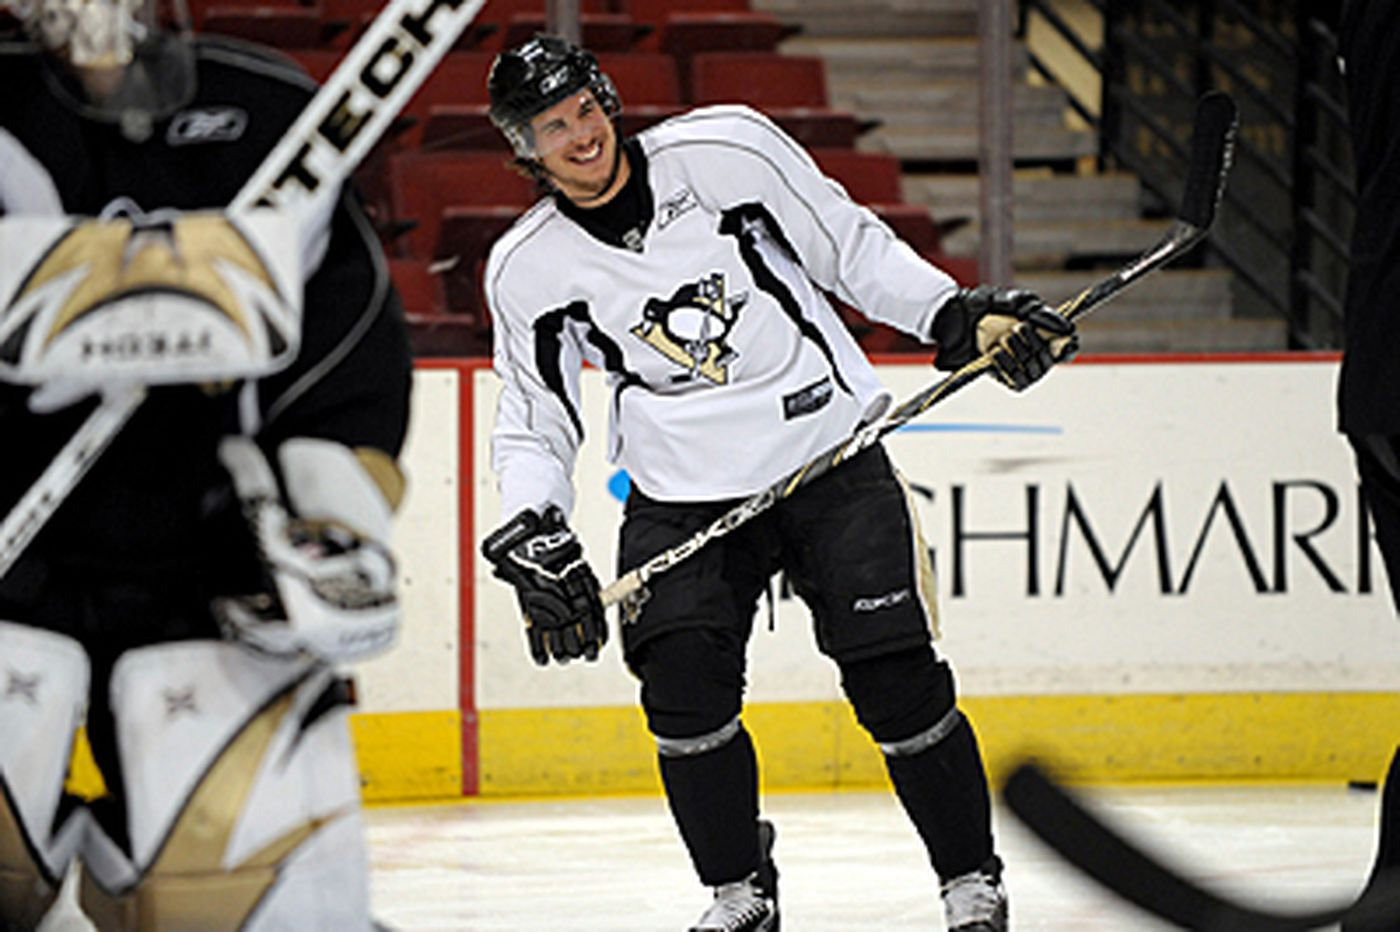 NHL: Finals offer marquee matchup in Red Wings vs. Penguins